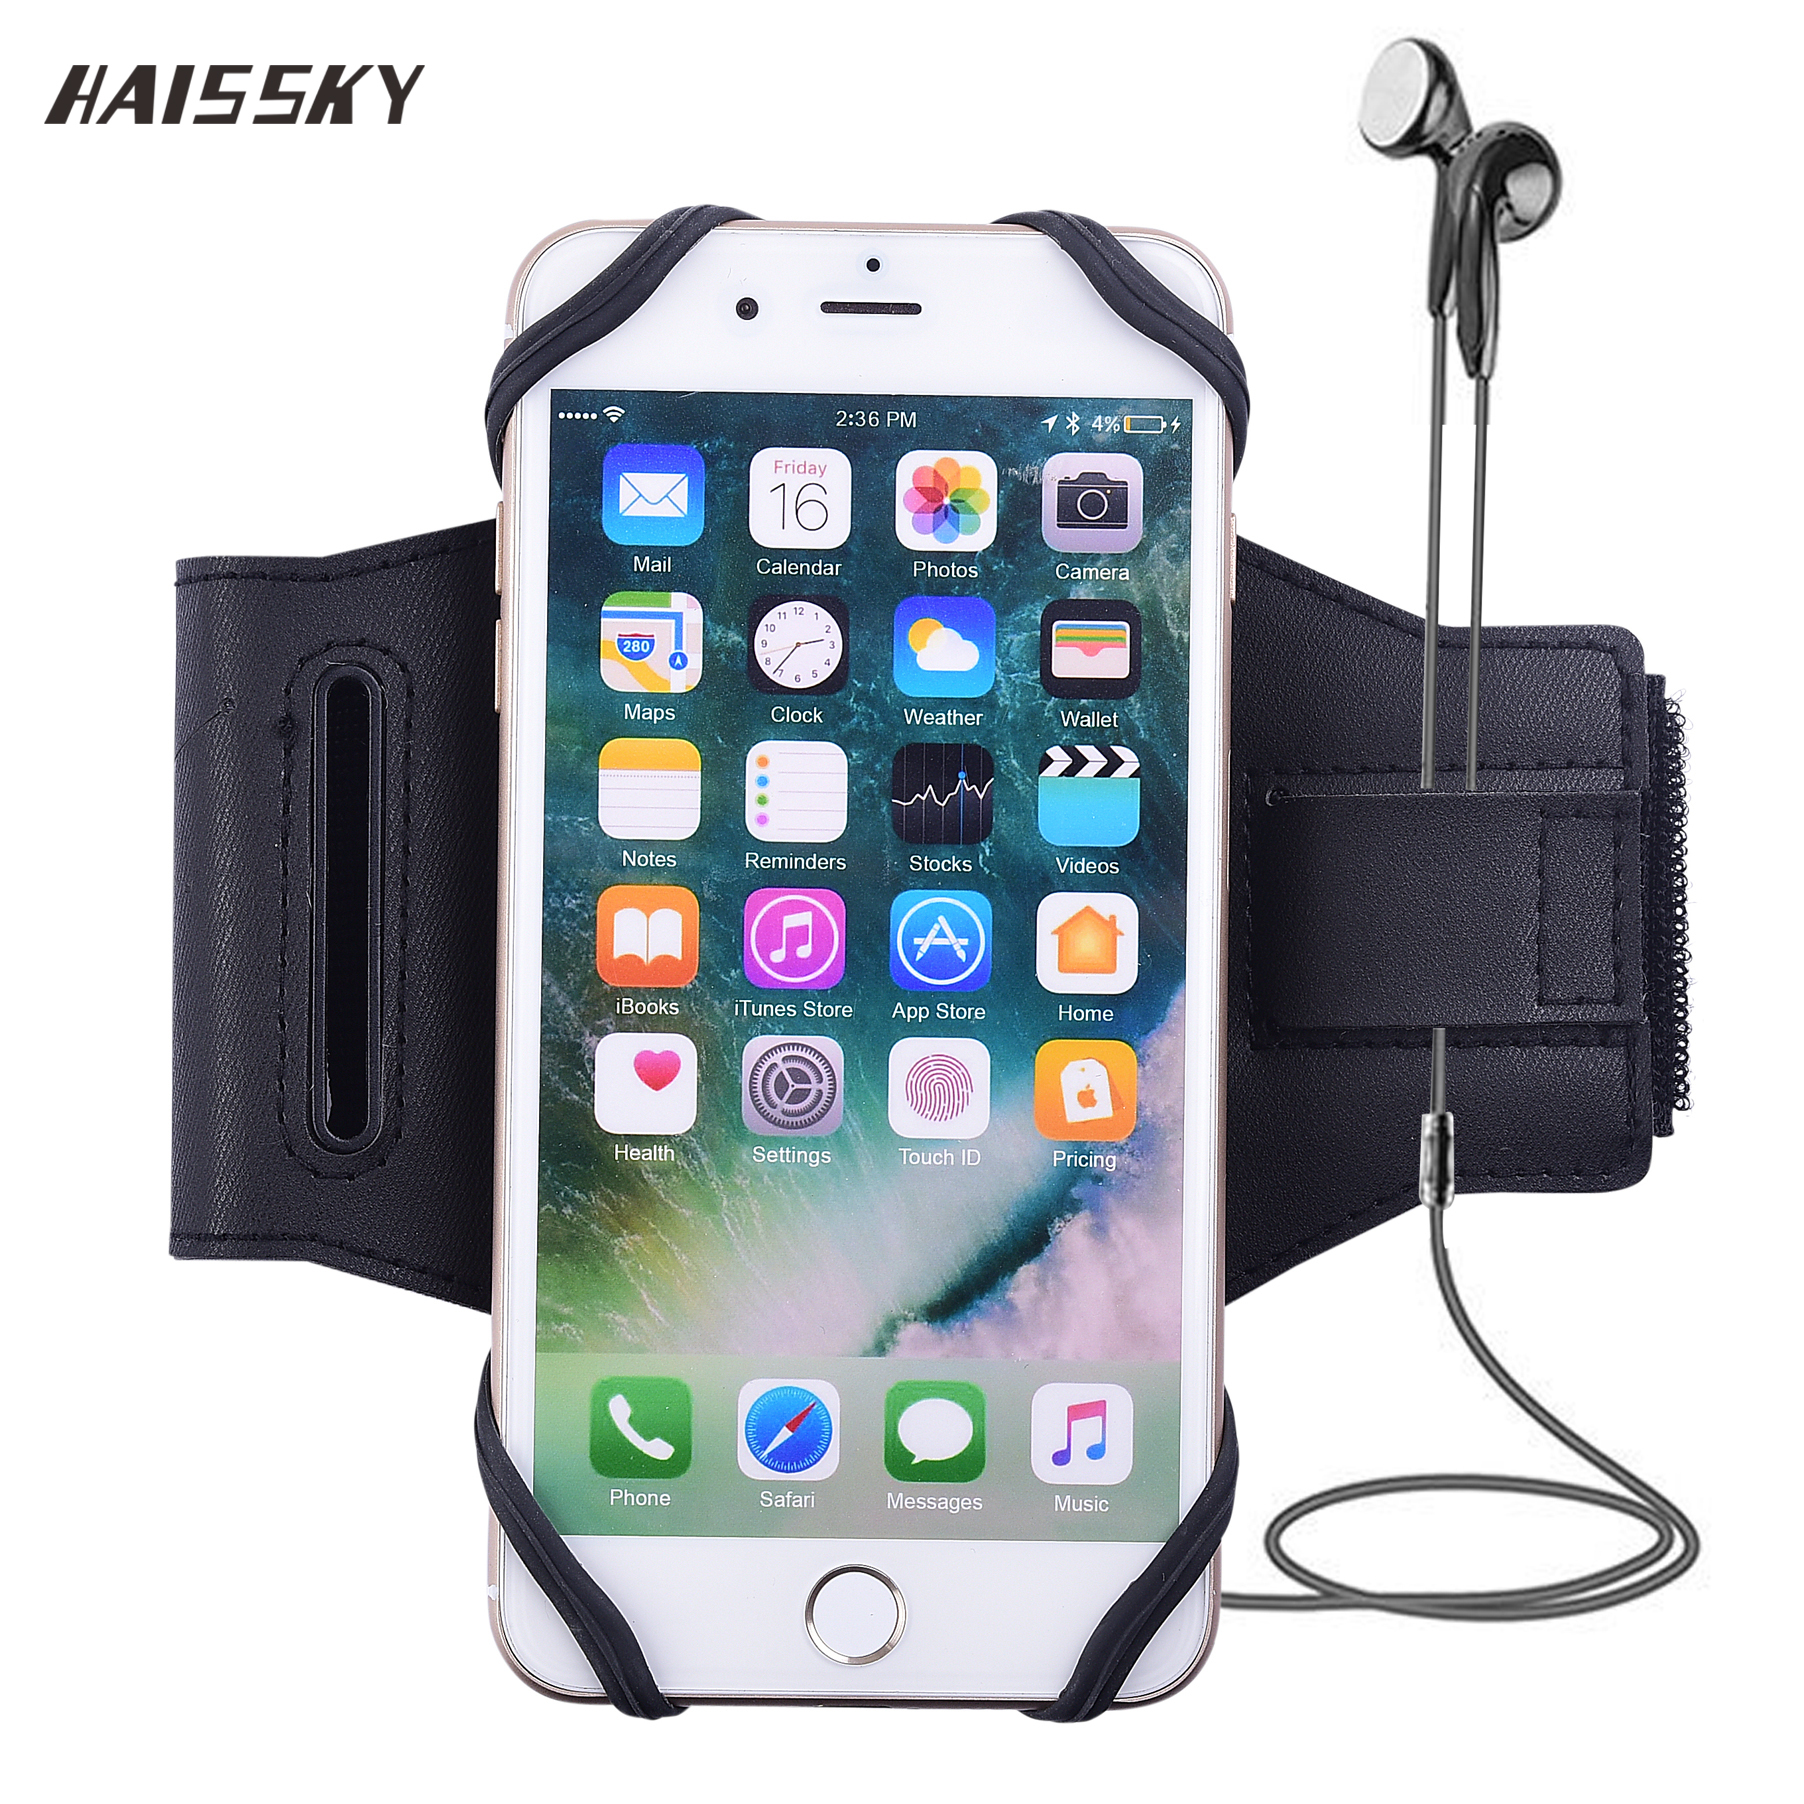 HAISSKY Sport Armband Case Universal For iPhone X 8 7 Plus 6 6s 5s SE Redmi 5 plus Samsung S9 Running Fitness Brassard Cover